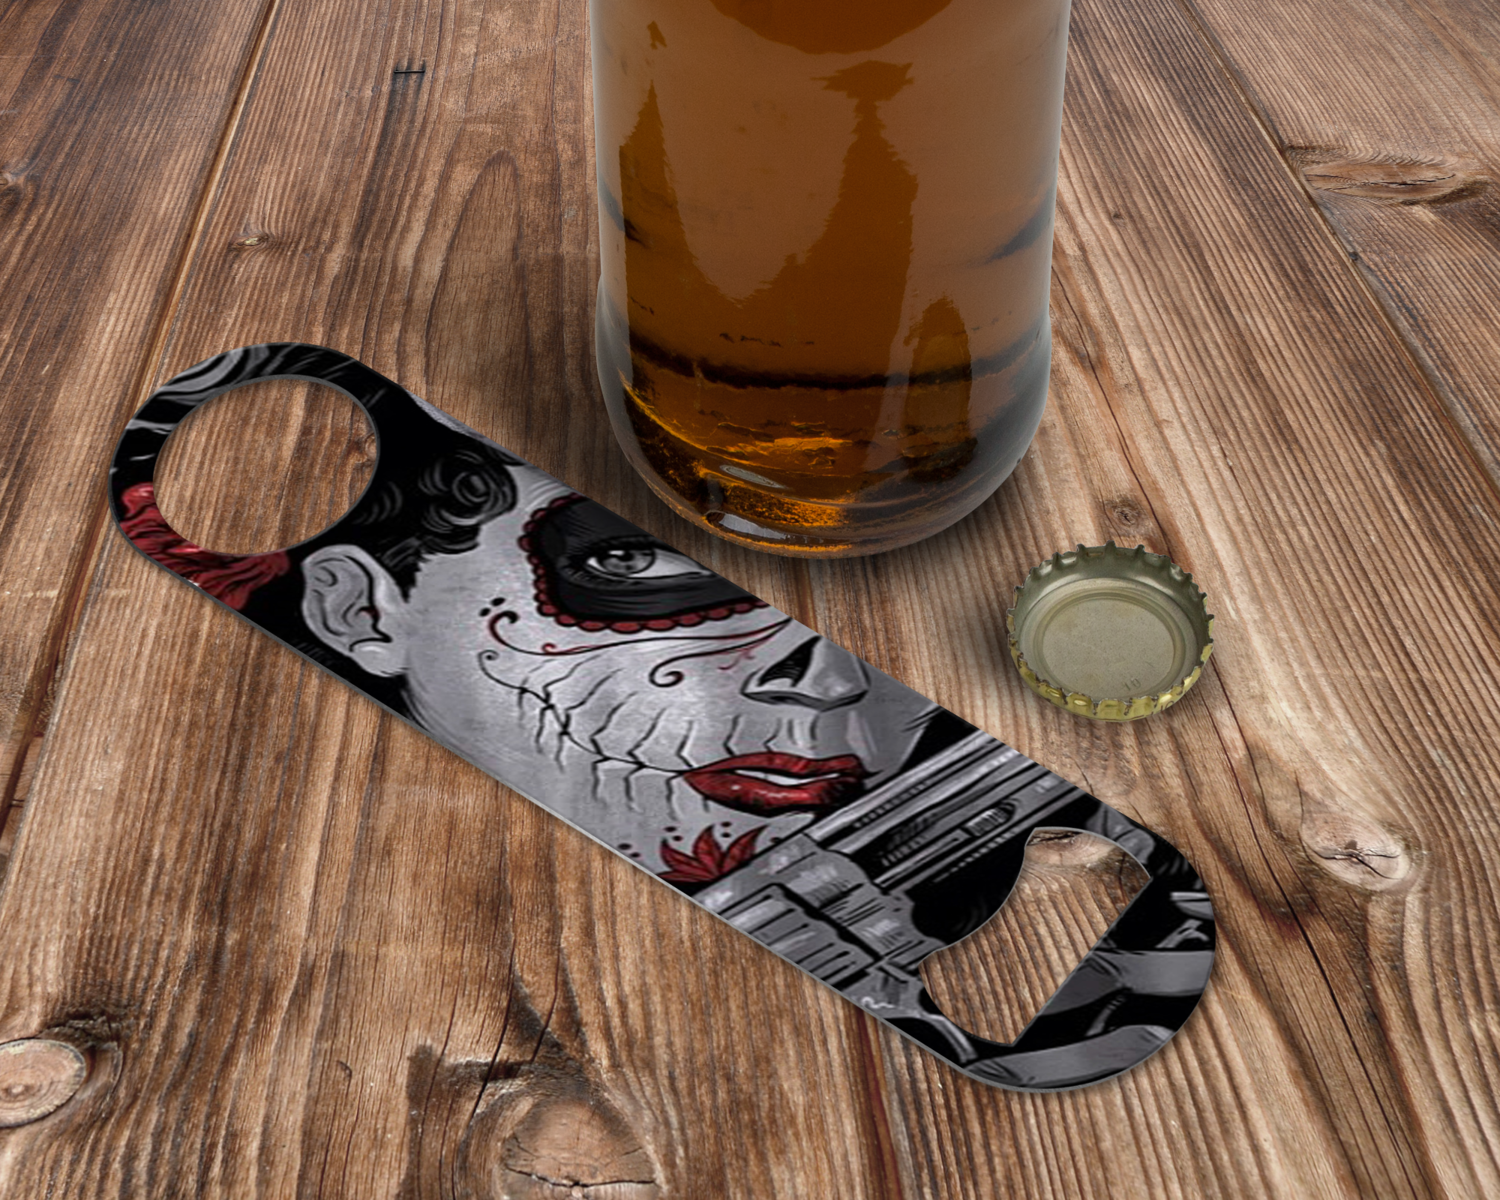 Custom Lady Gaga Bottle Opener